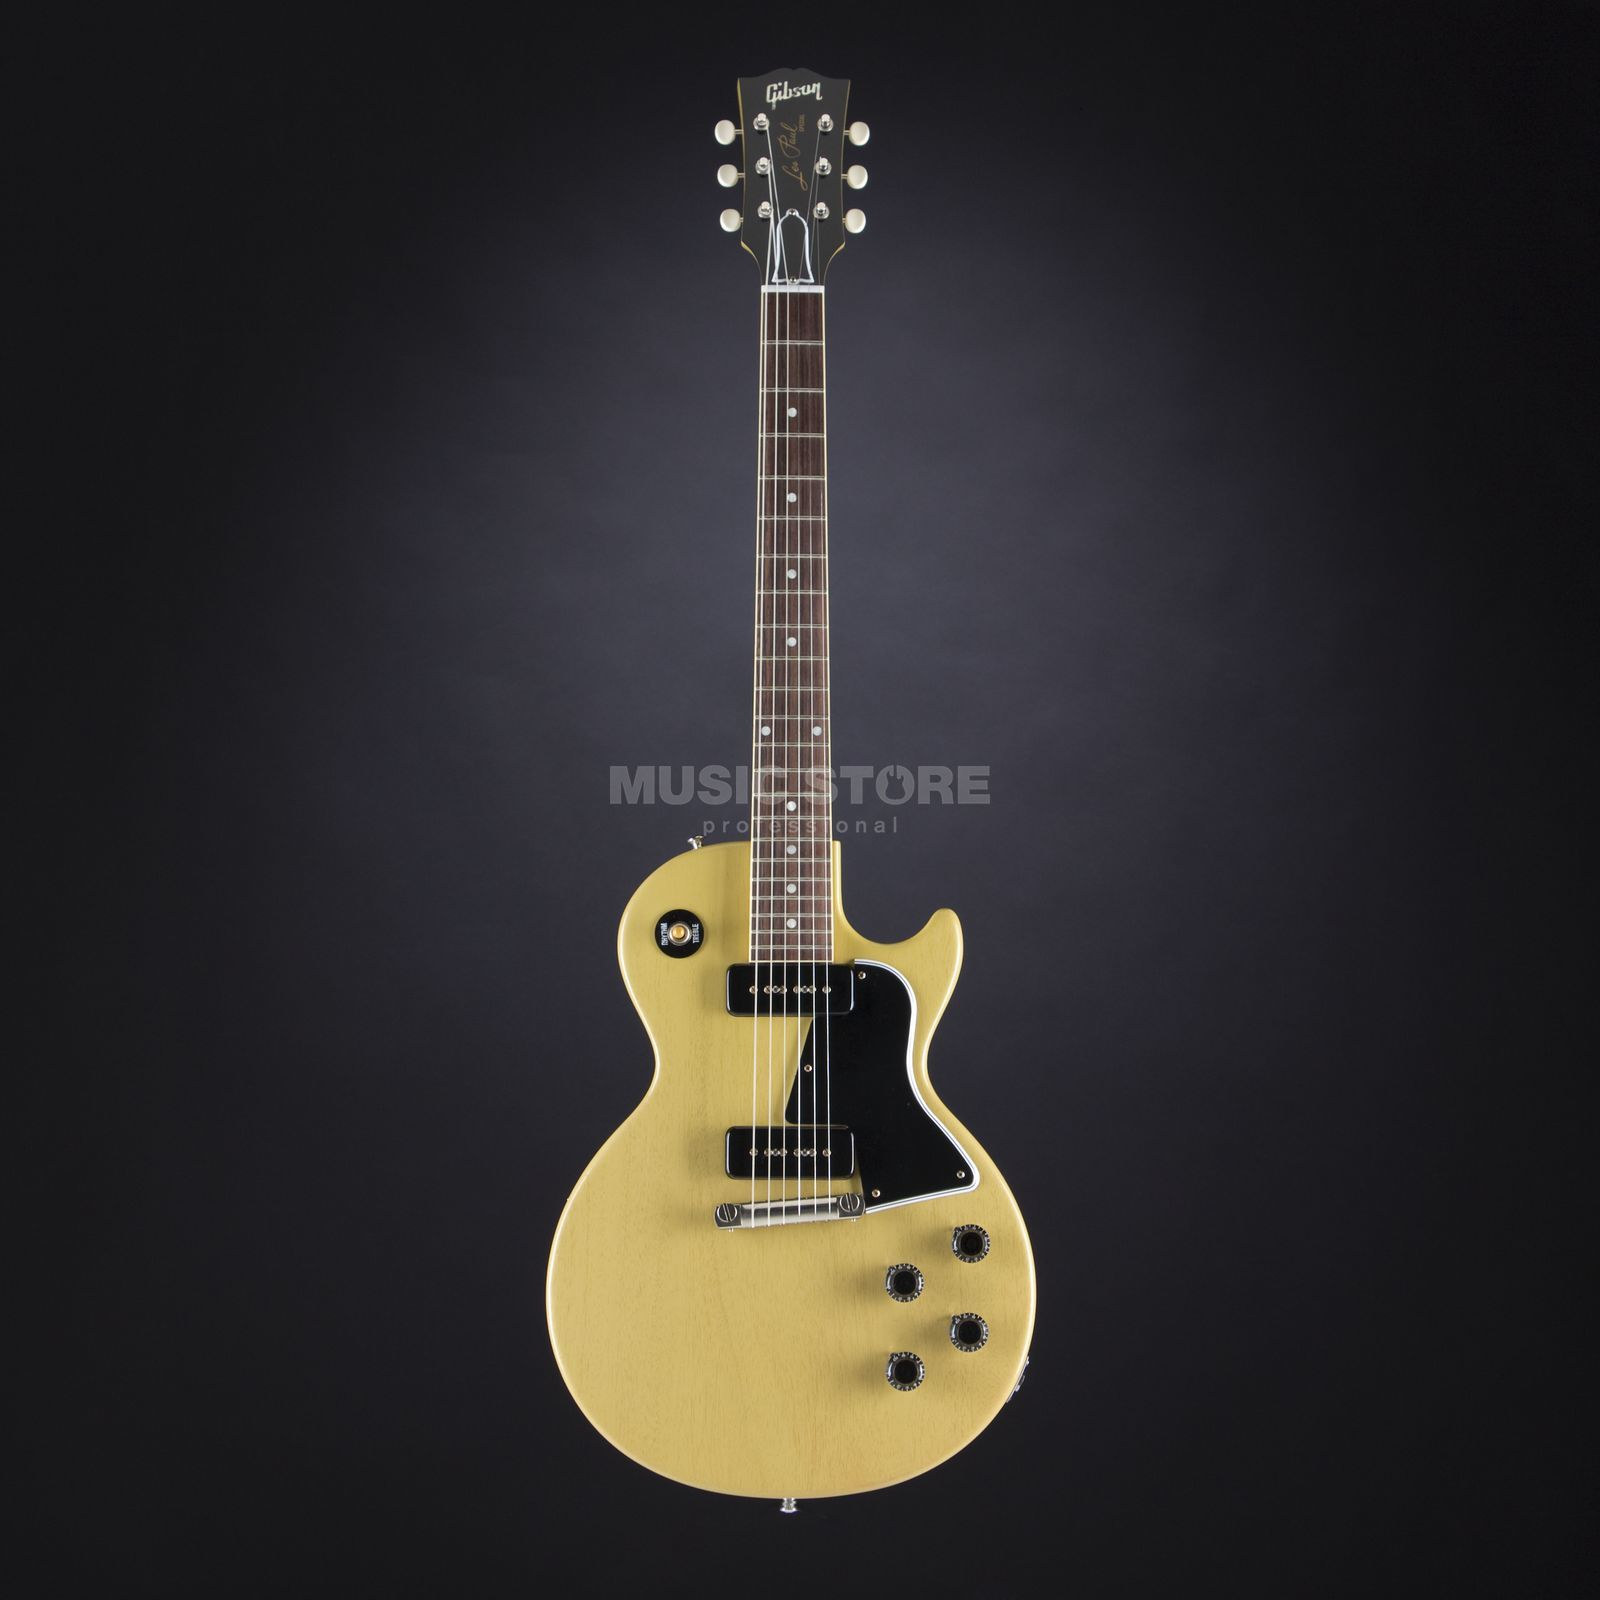 Gibson 1960 Les Paul Special SC TV TV Yellow Gloss #05141 Produktbild